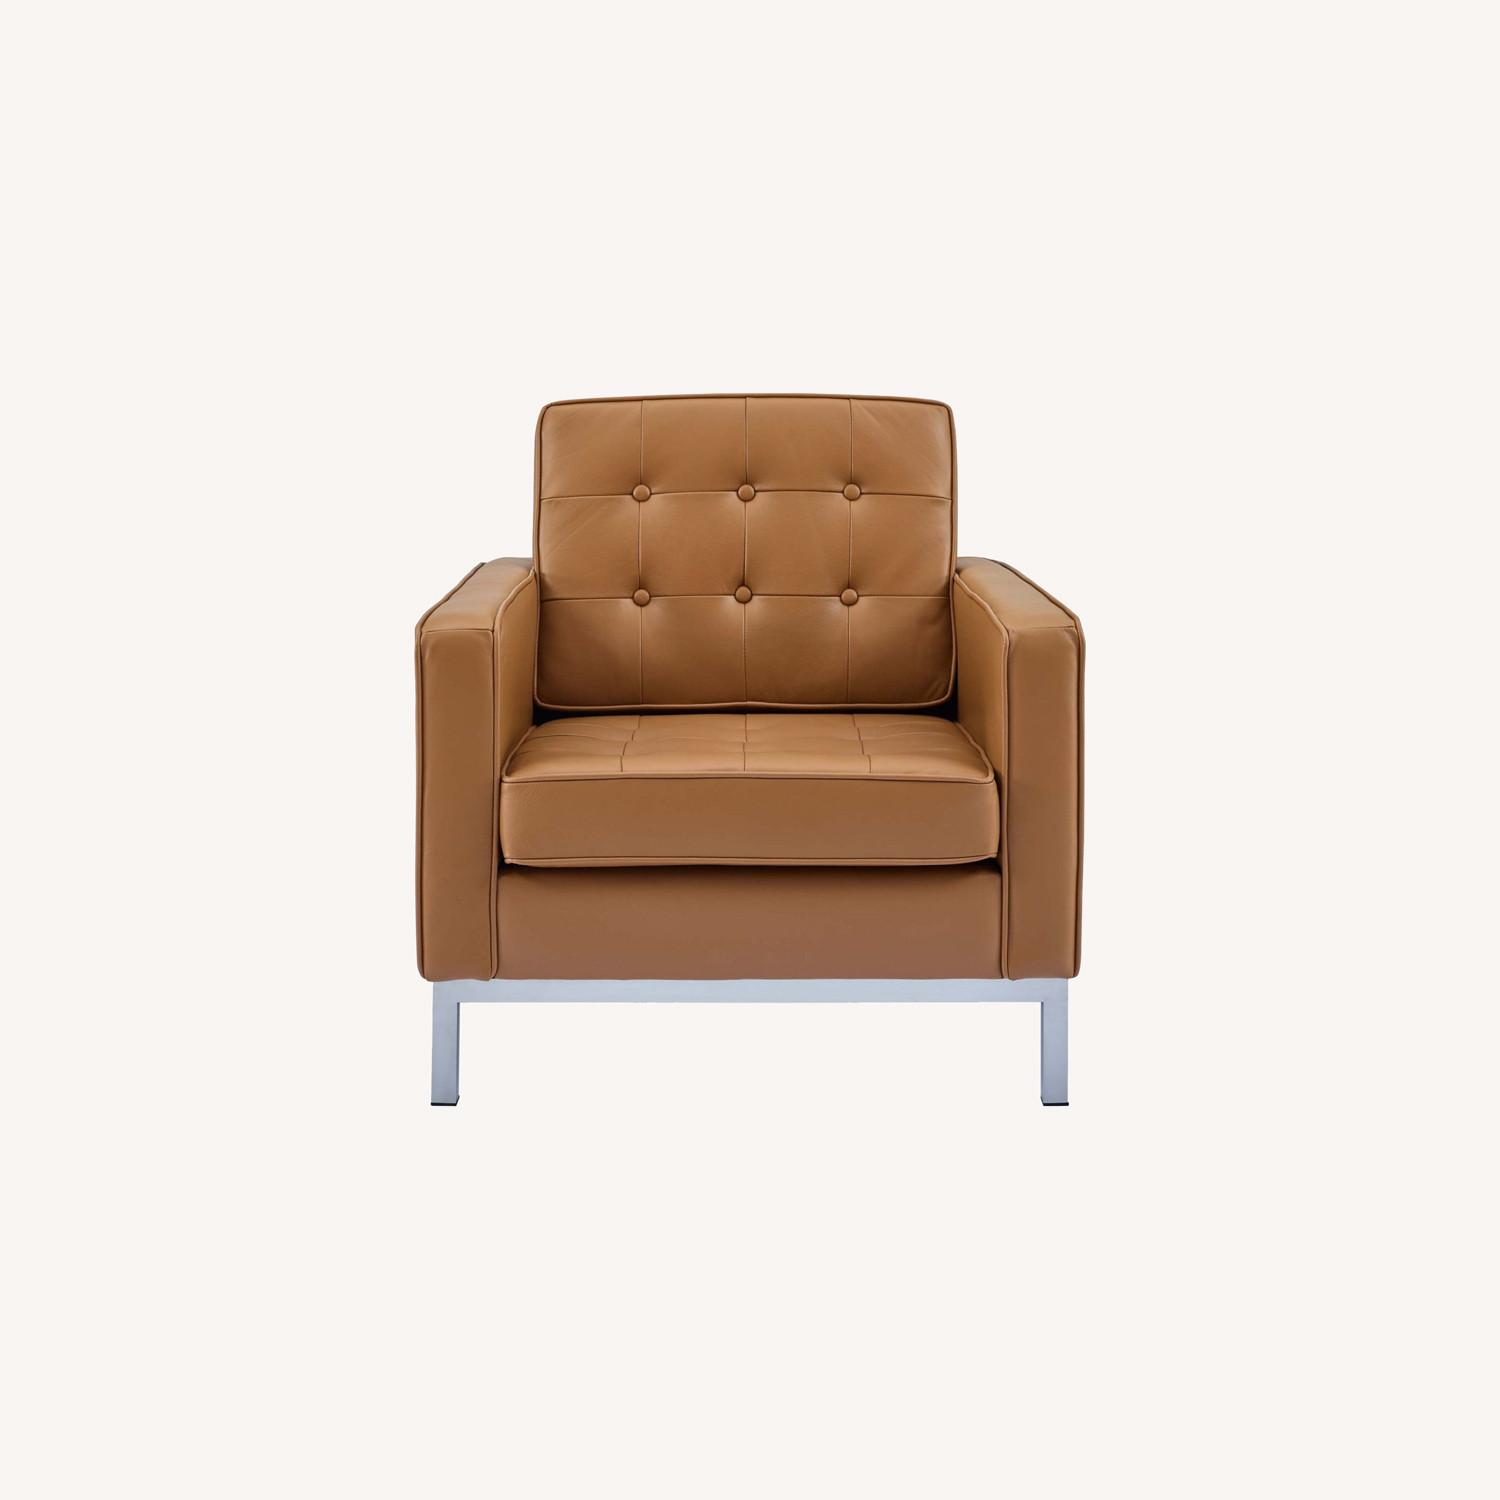 Modern Armchair In Tan Leather W/ Tufted Buttons - image-8